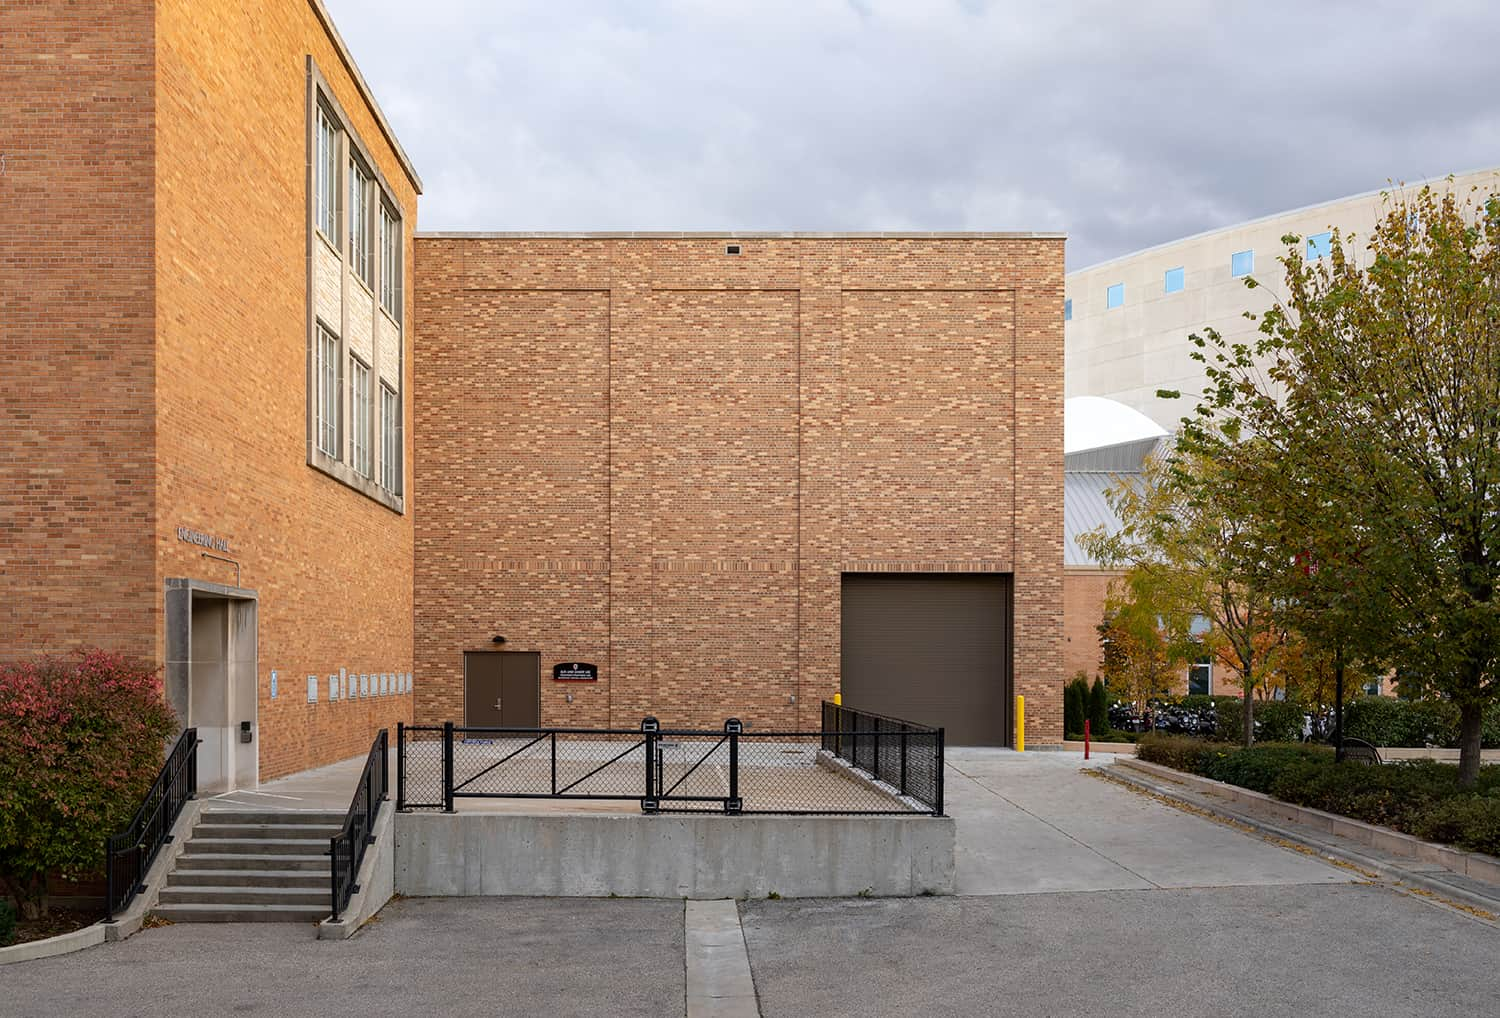 Exterior view of the lab entry and materials loading dock door.